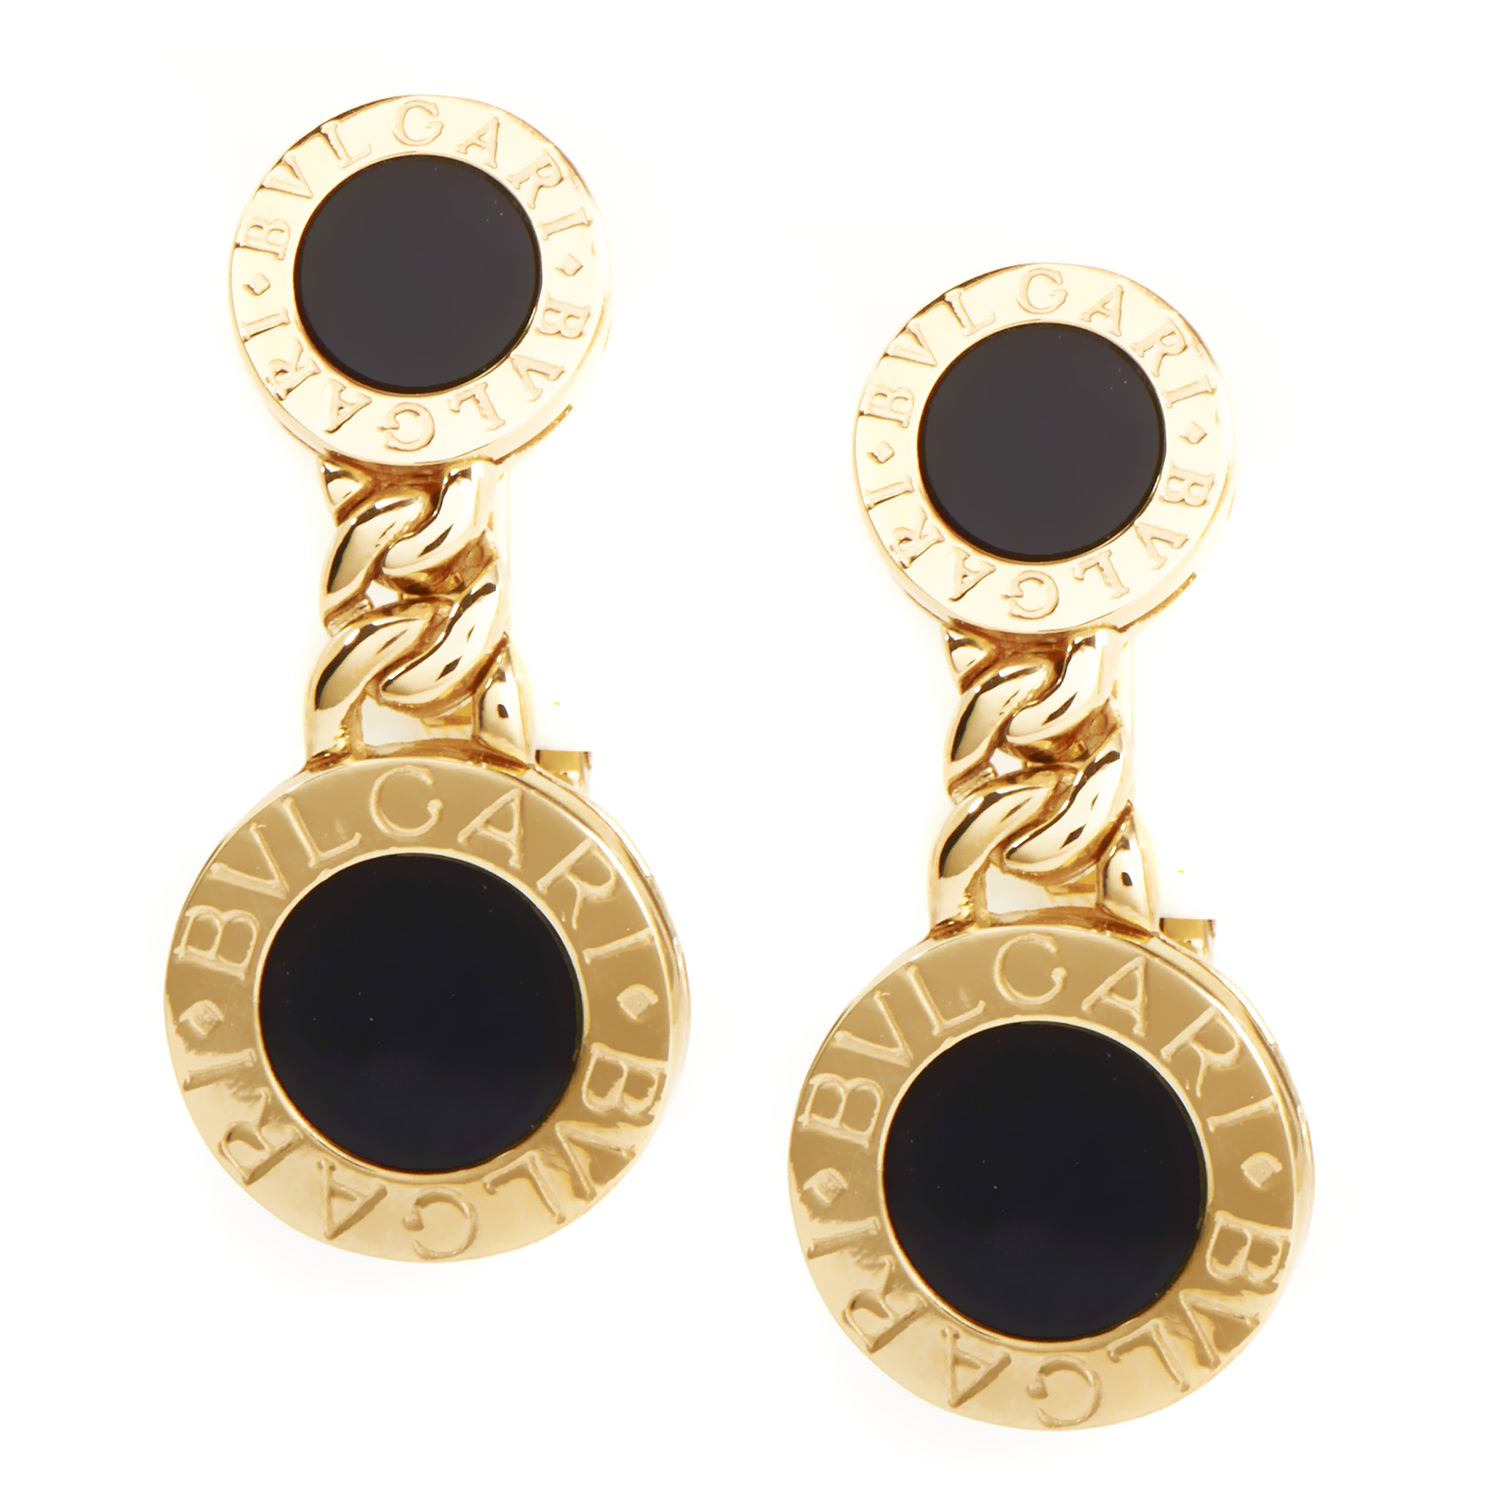 Bvlgari BVLGARI Women's 18K Yellow Gold Onyx Clip-on Earrings